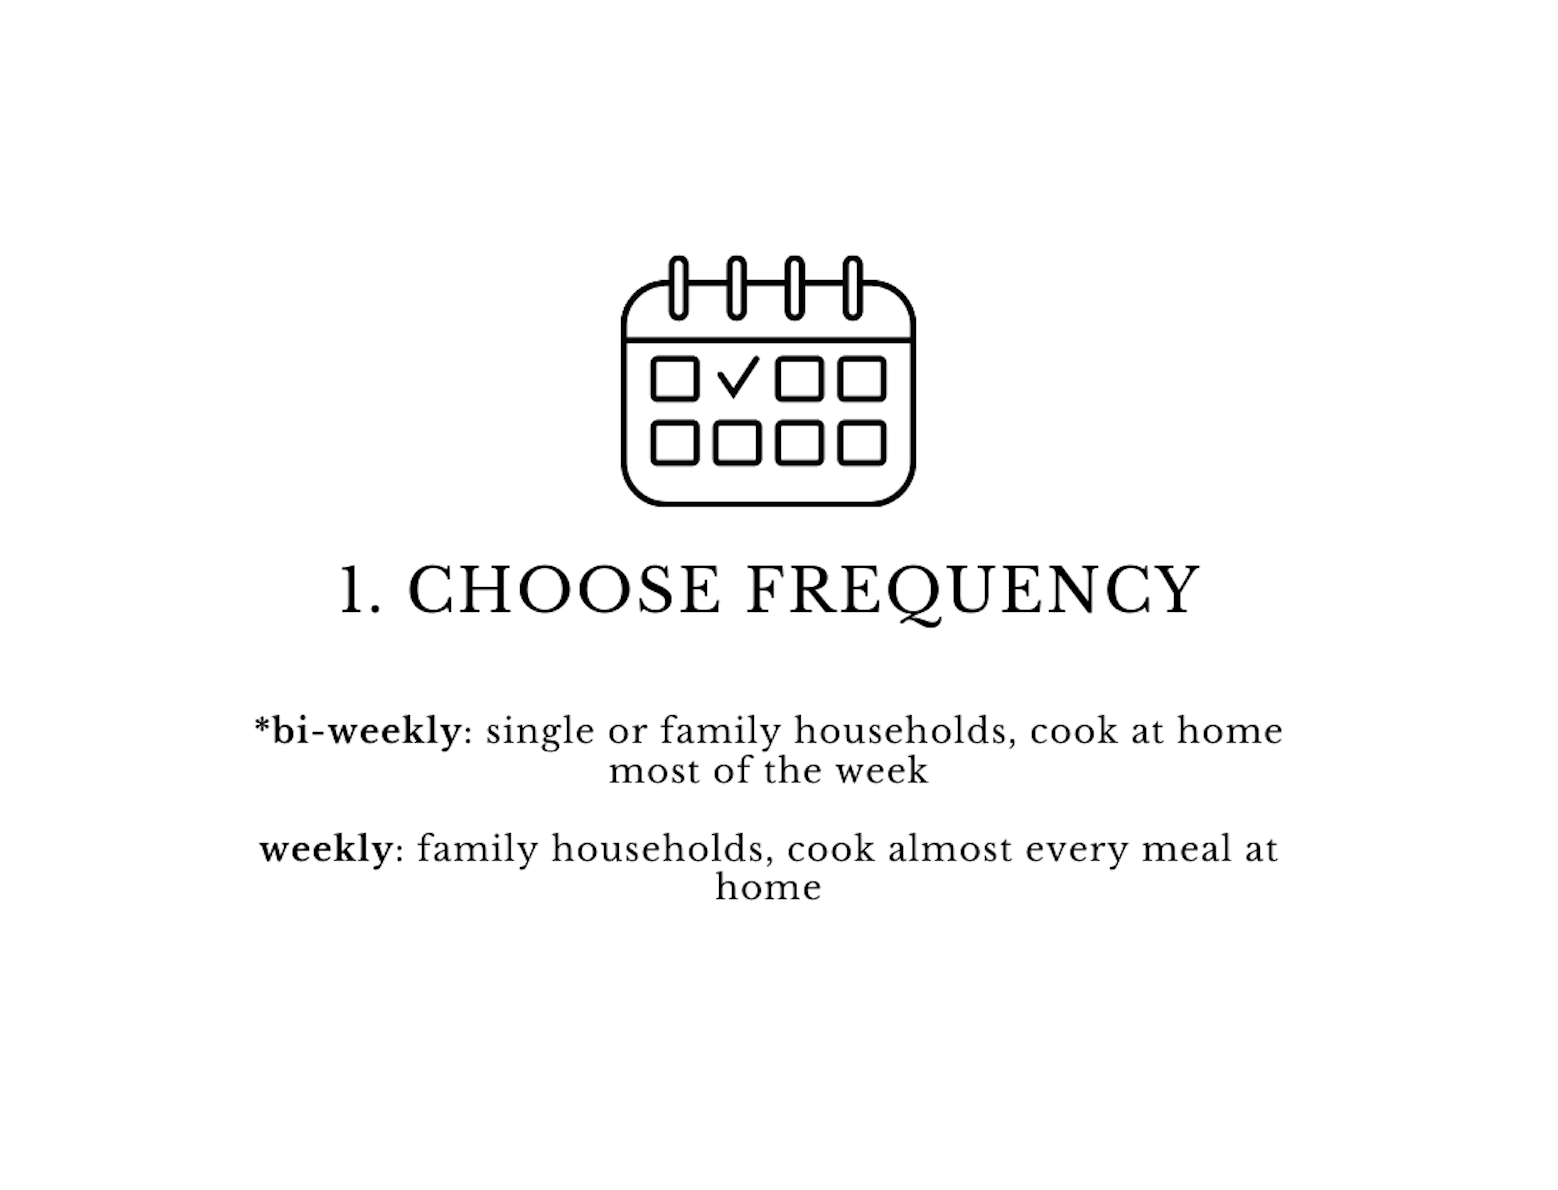 choose frequency